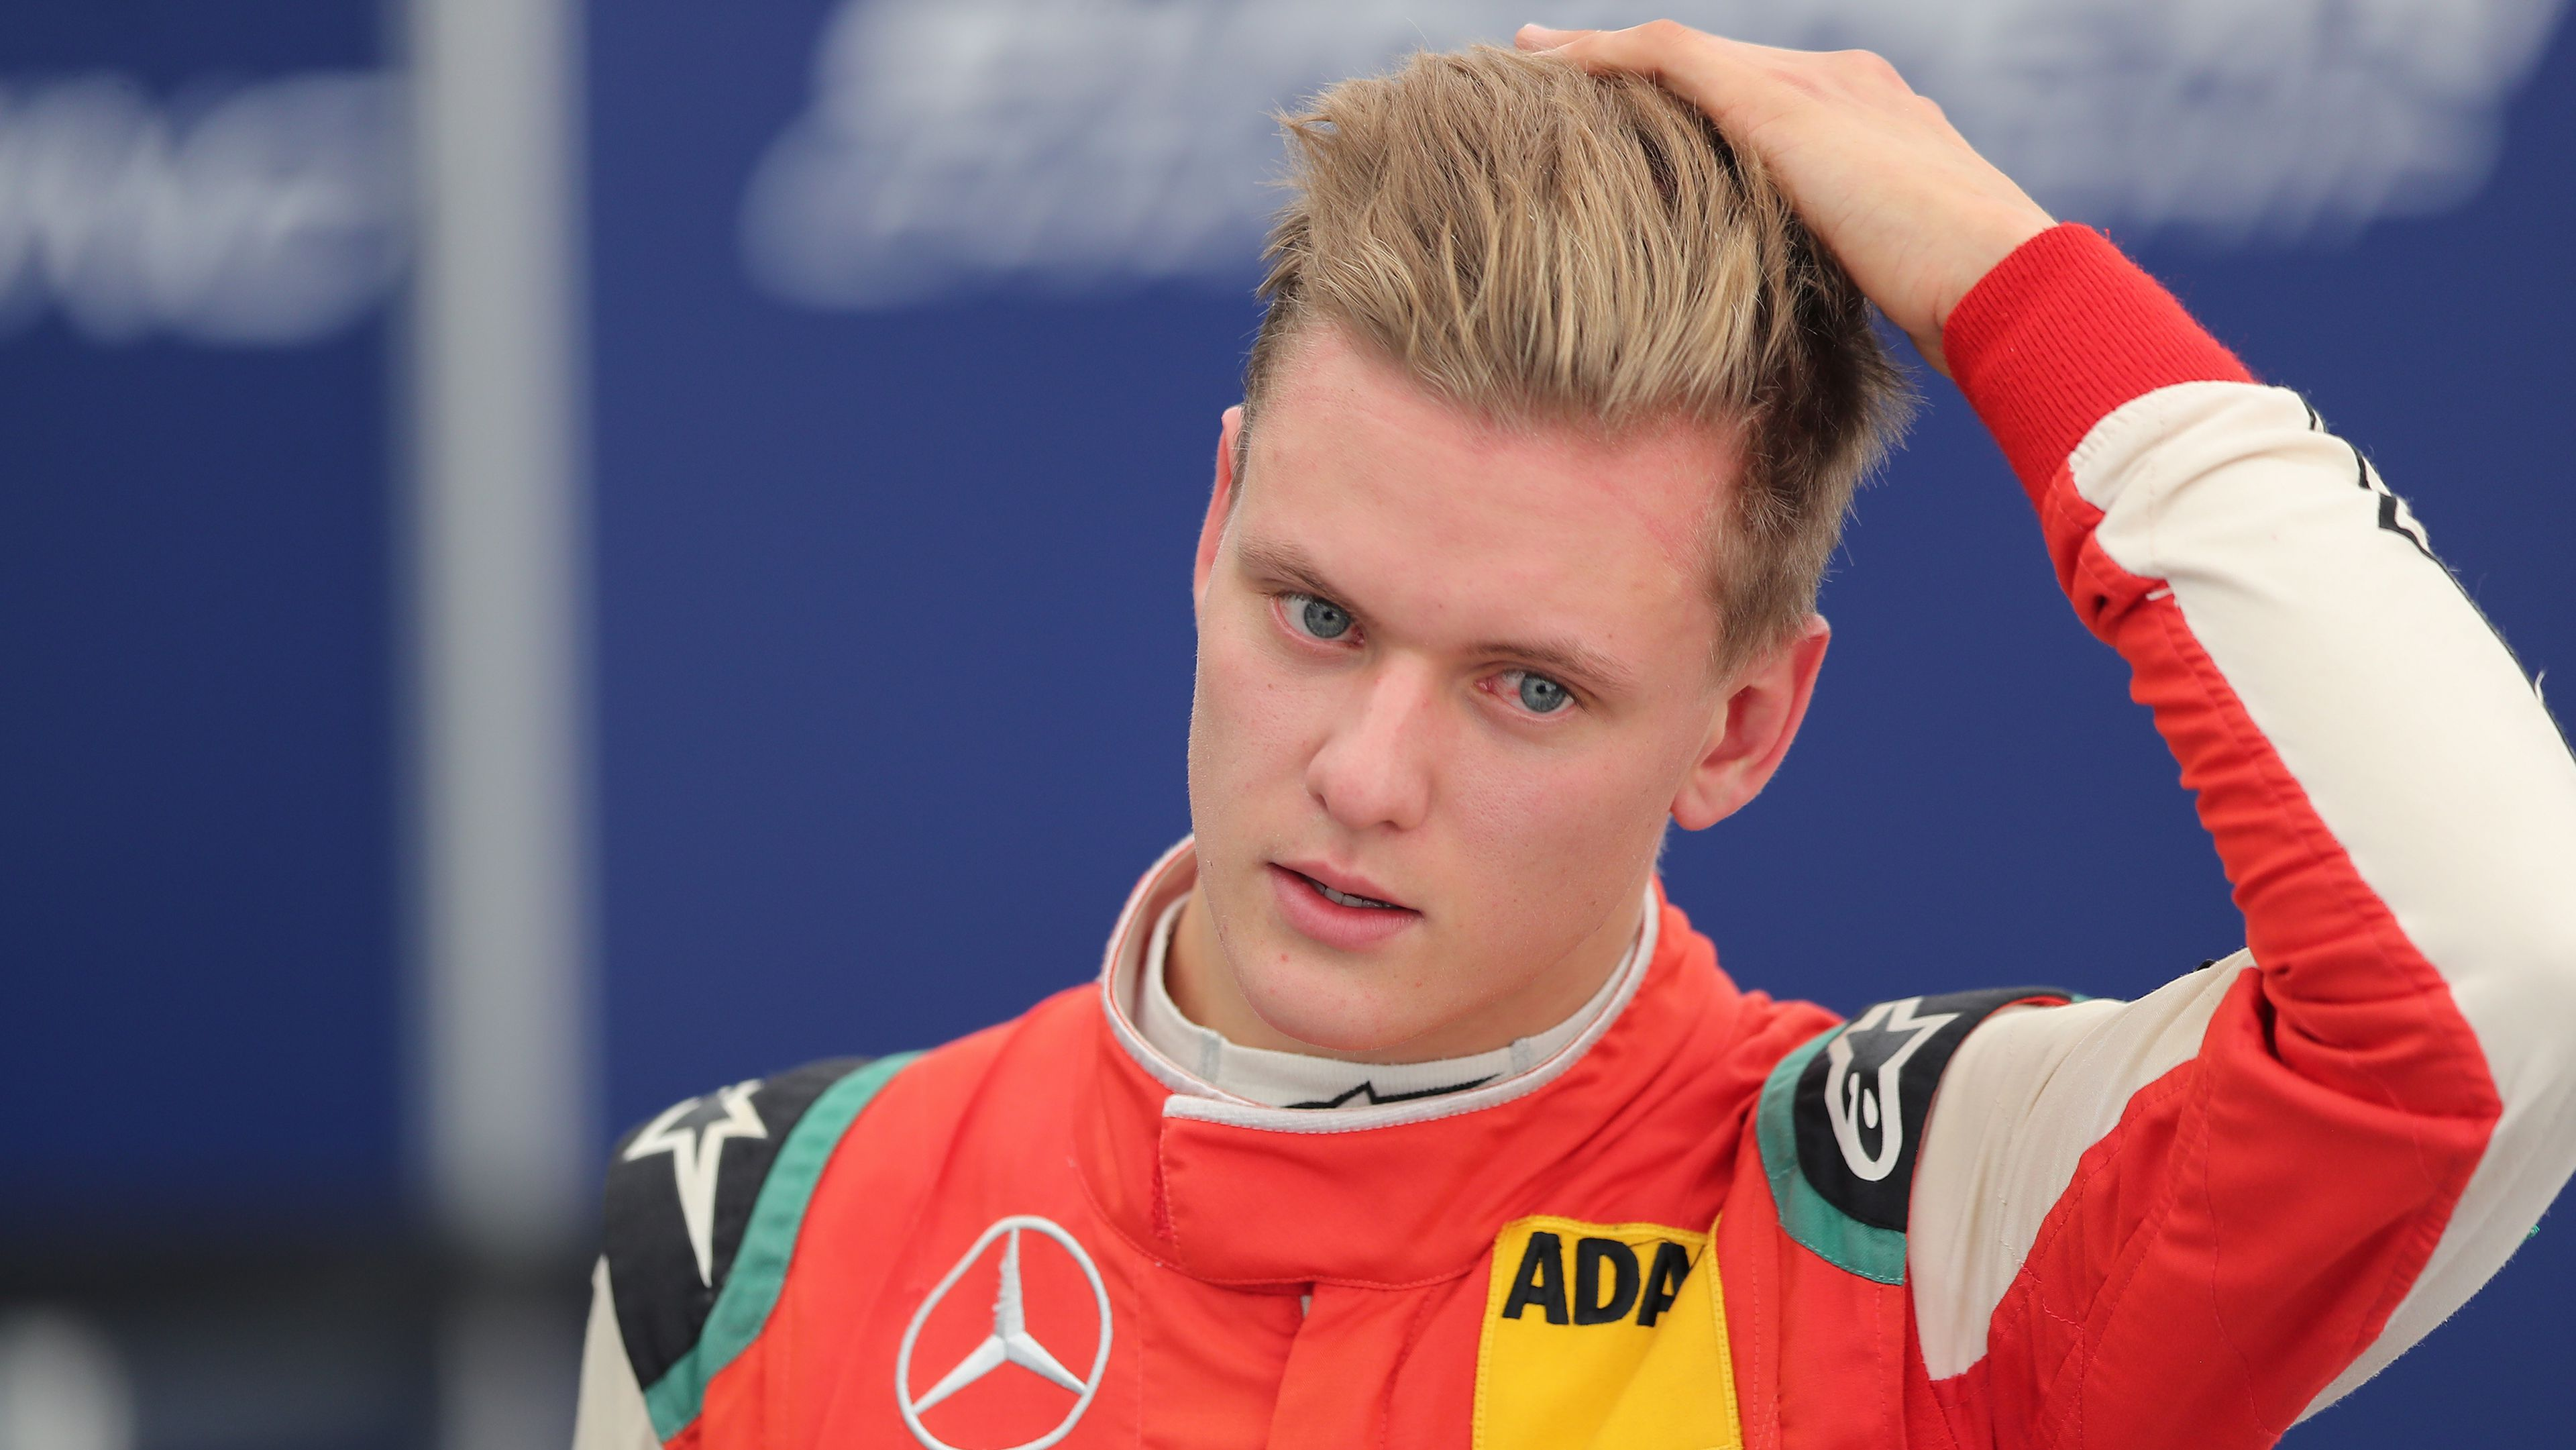 Mick Schumacher at Hockenheimring in Germany.